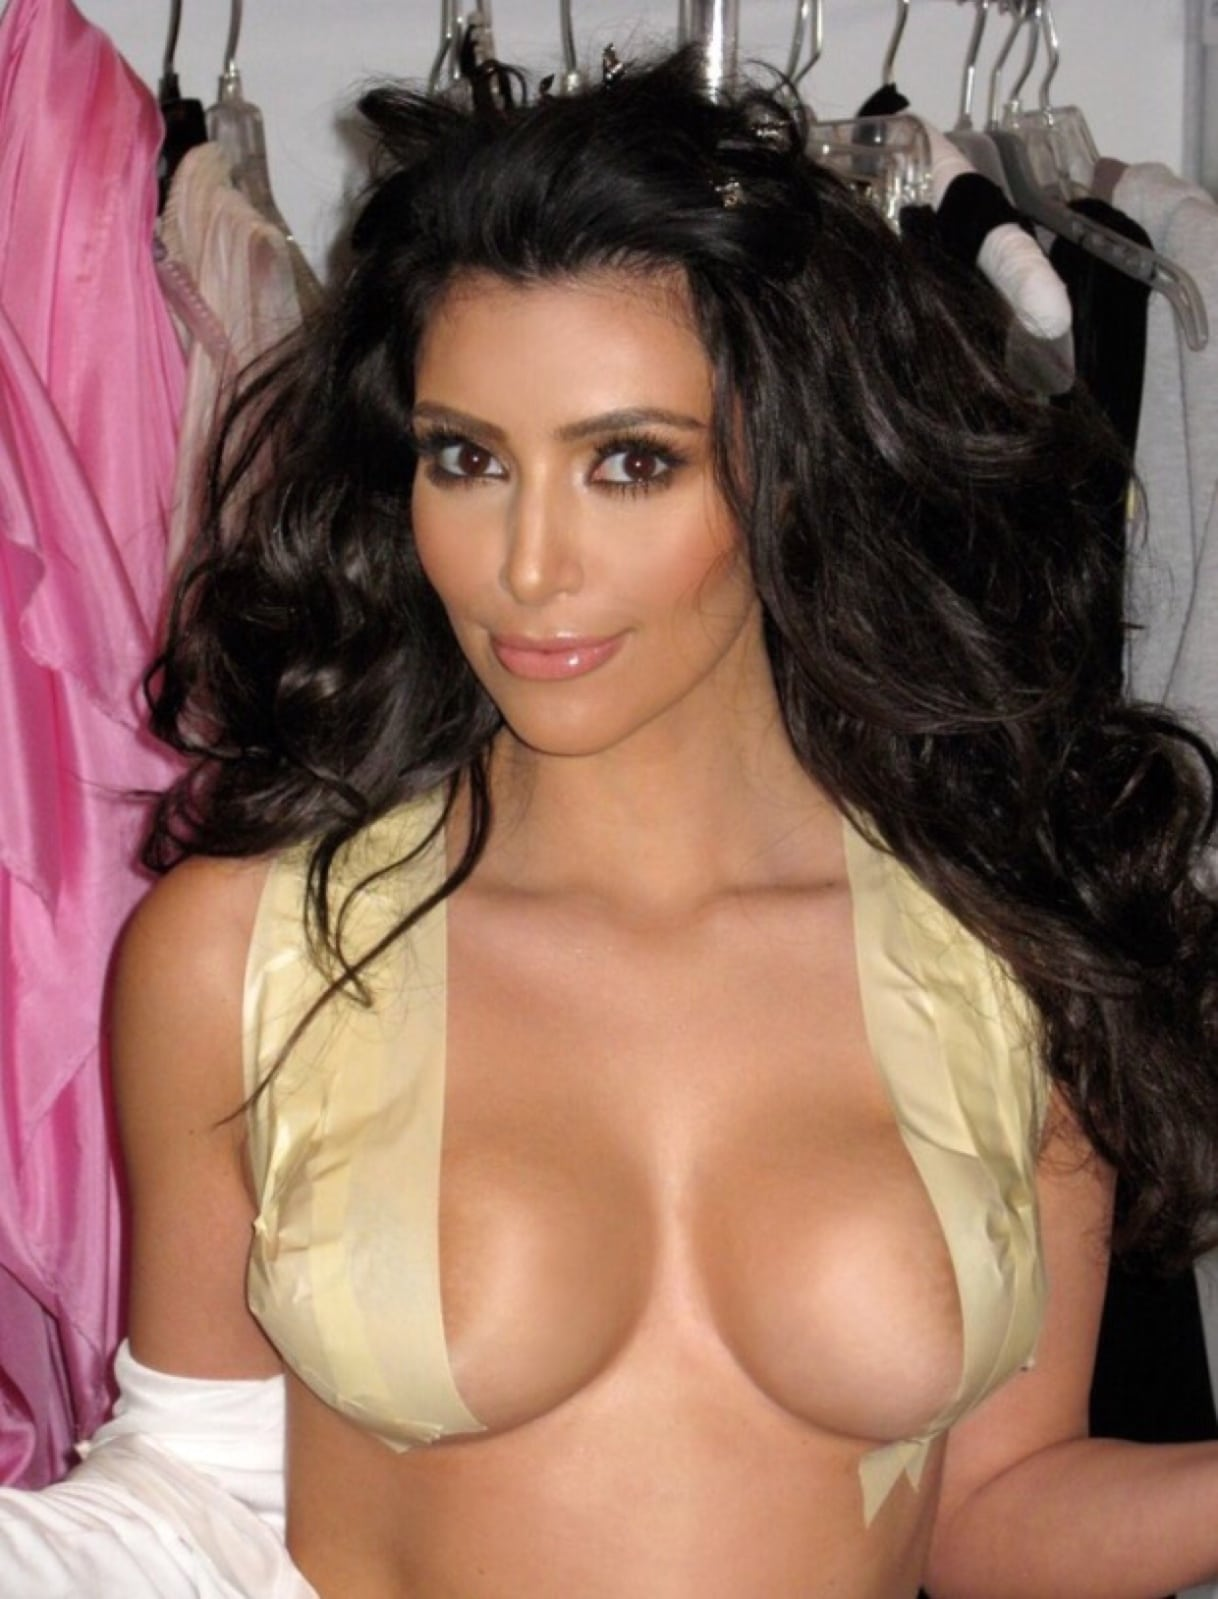 Kim Kardashian Boobs